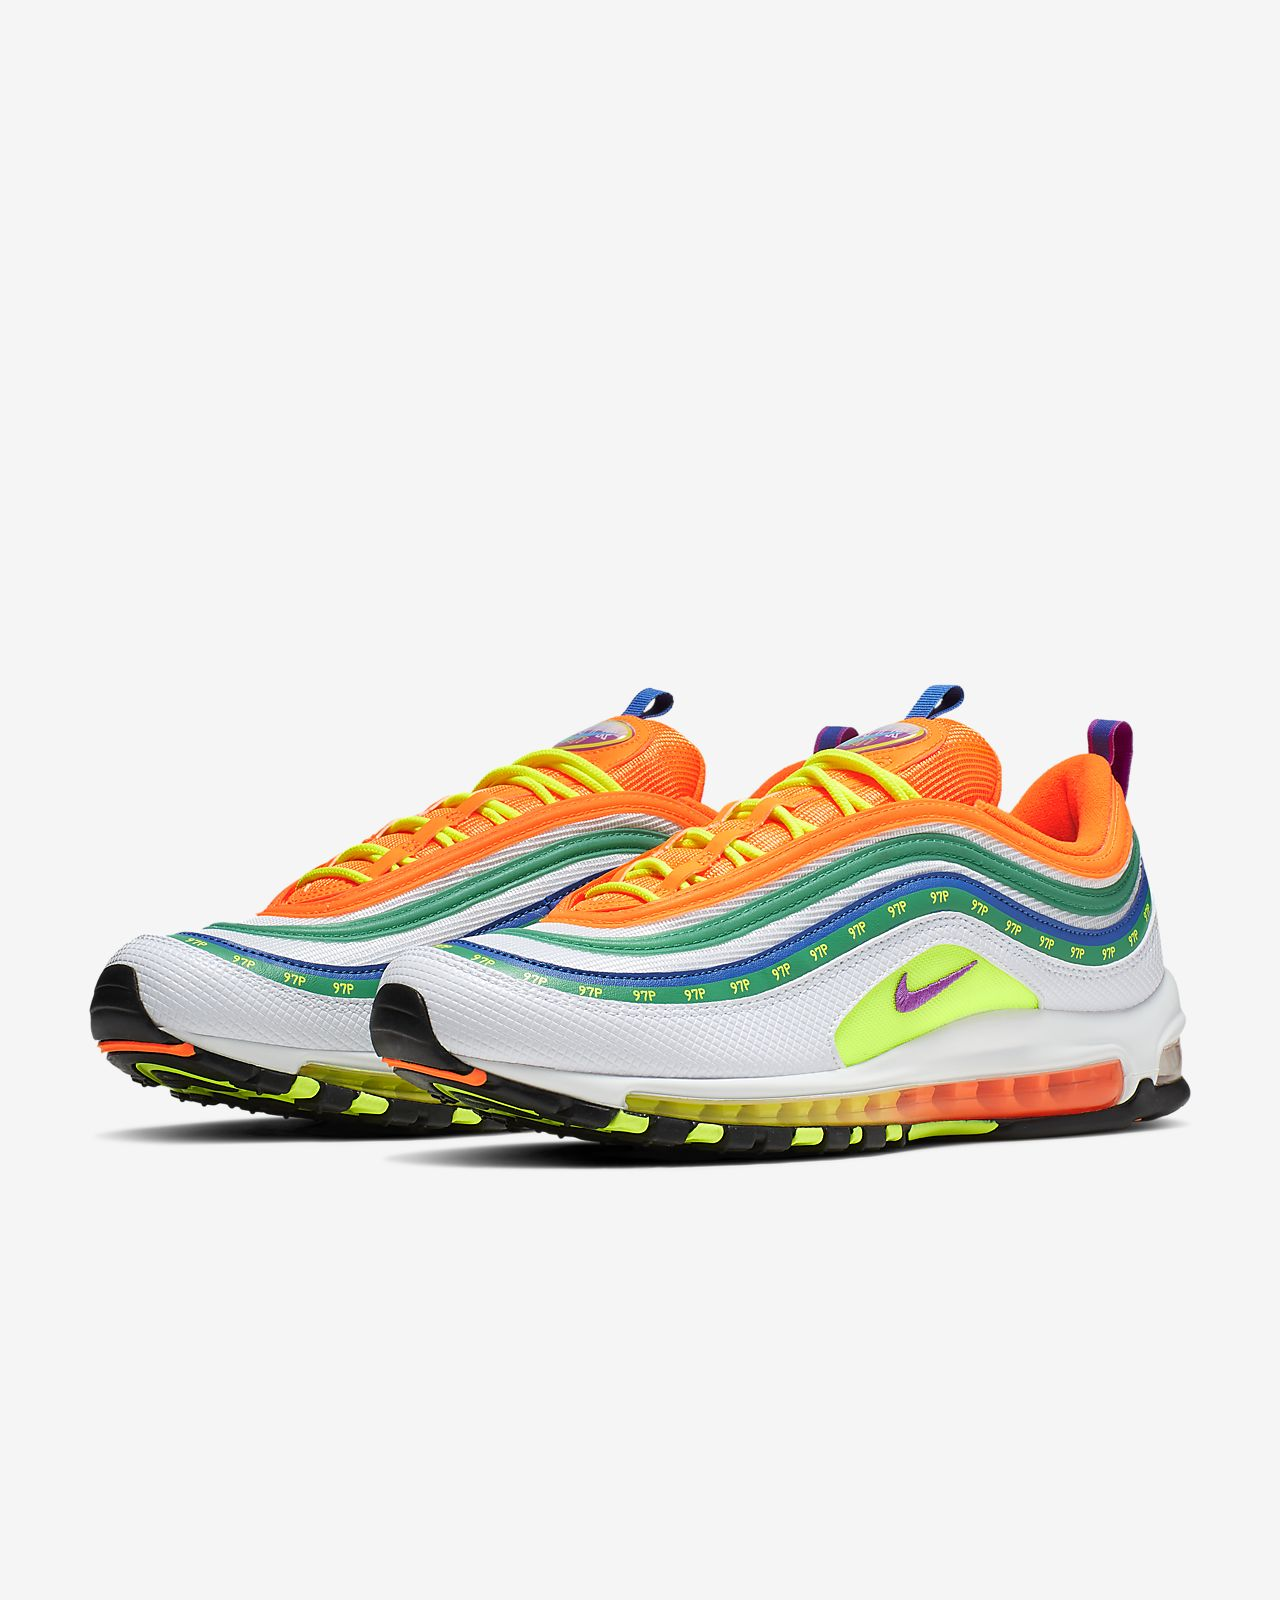 Nike Air Max 97 London 'London Of Love' Shopee Indonesia